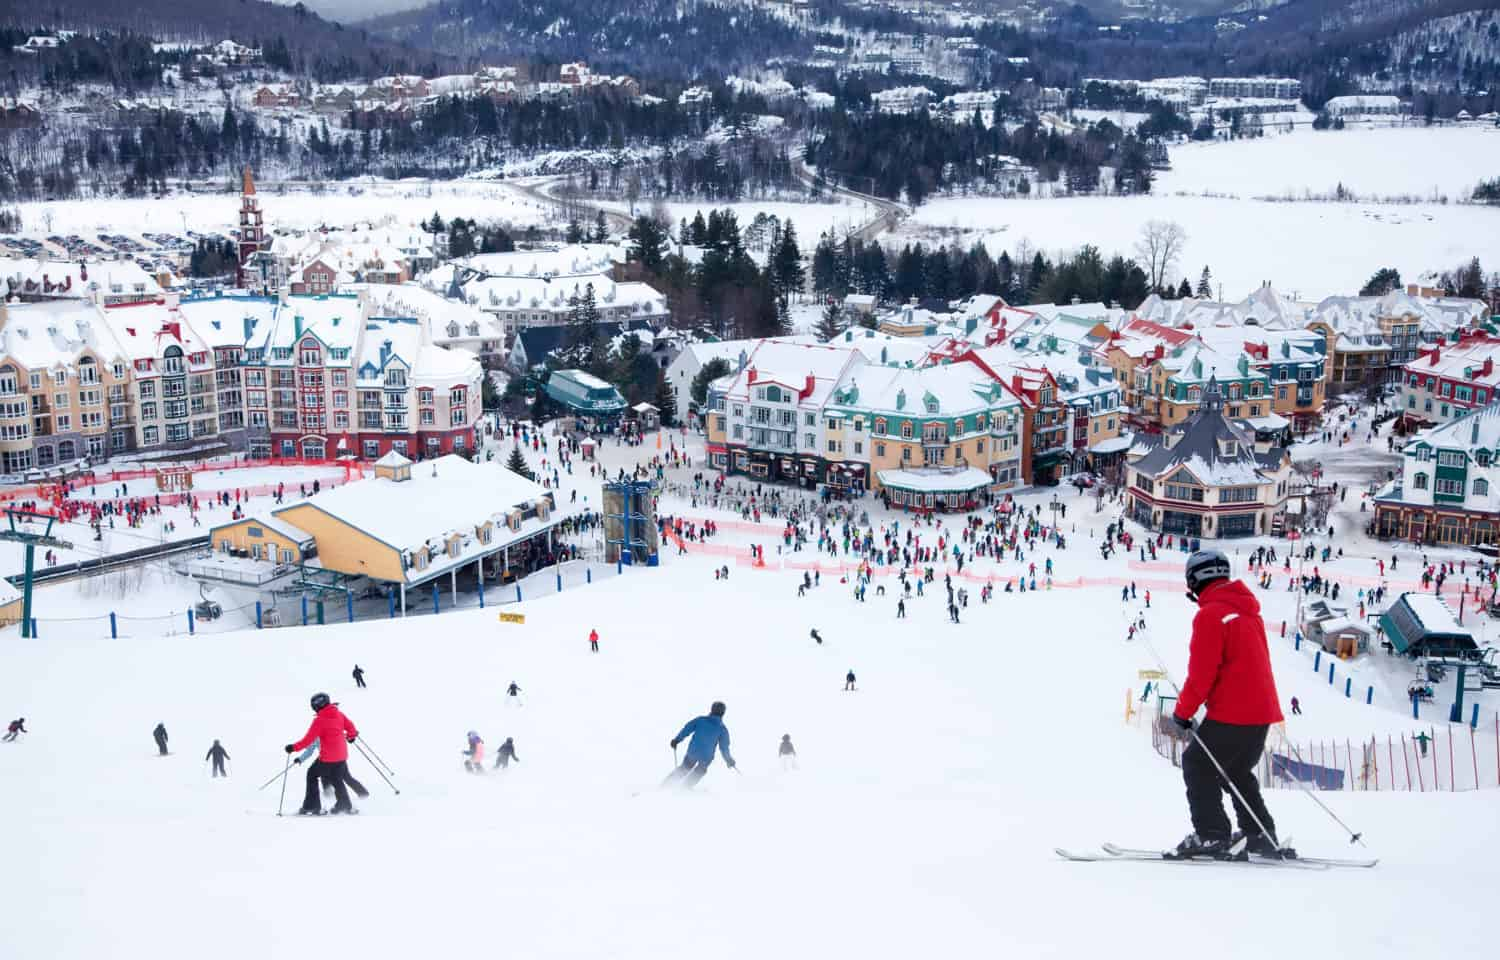 Mont-Tremblant Ski Resort in Quebec